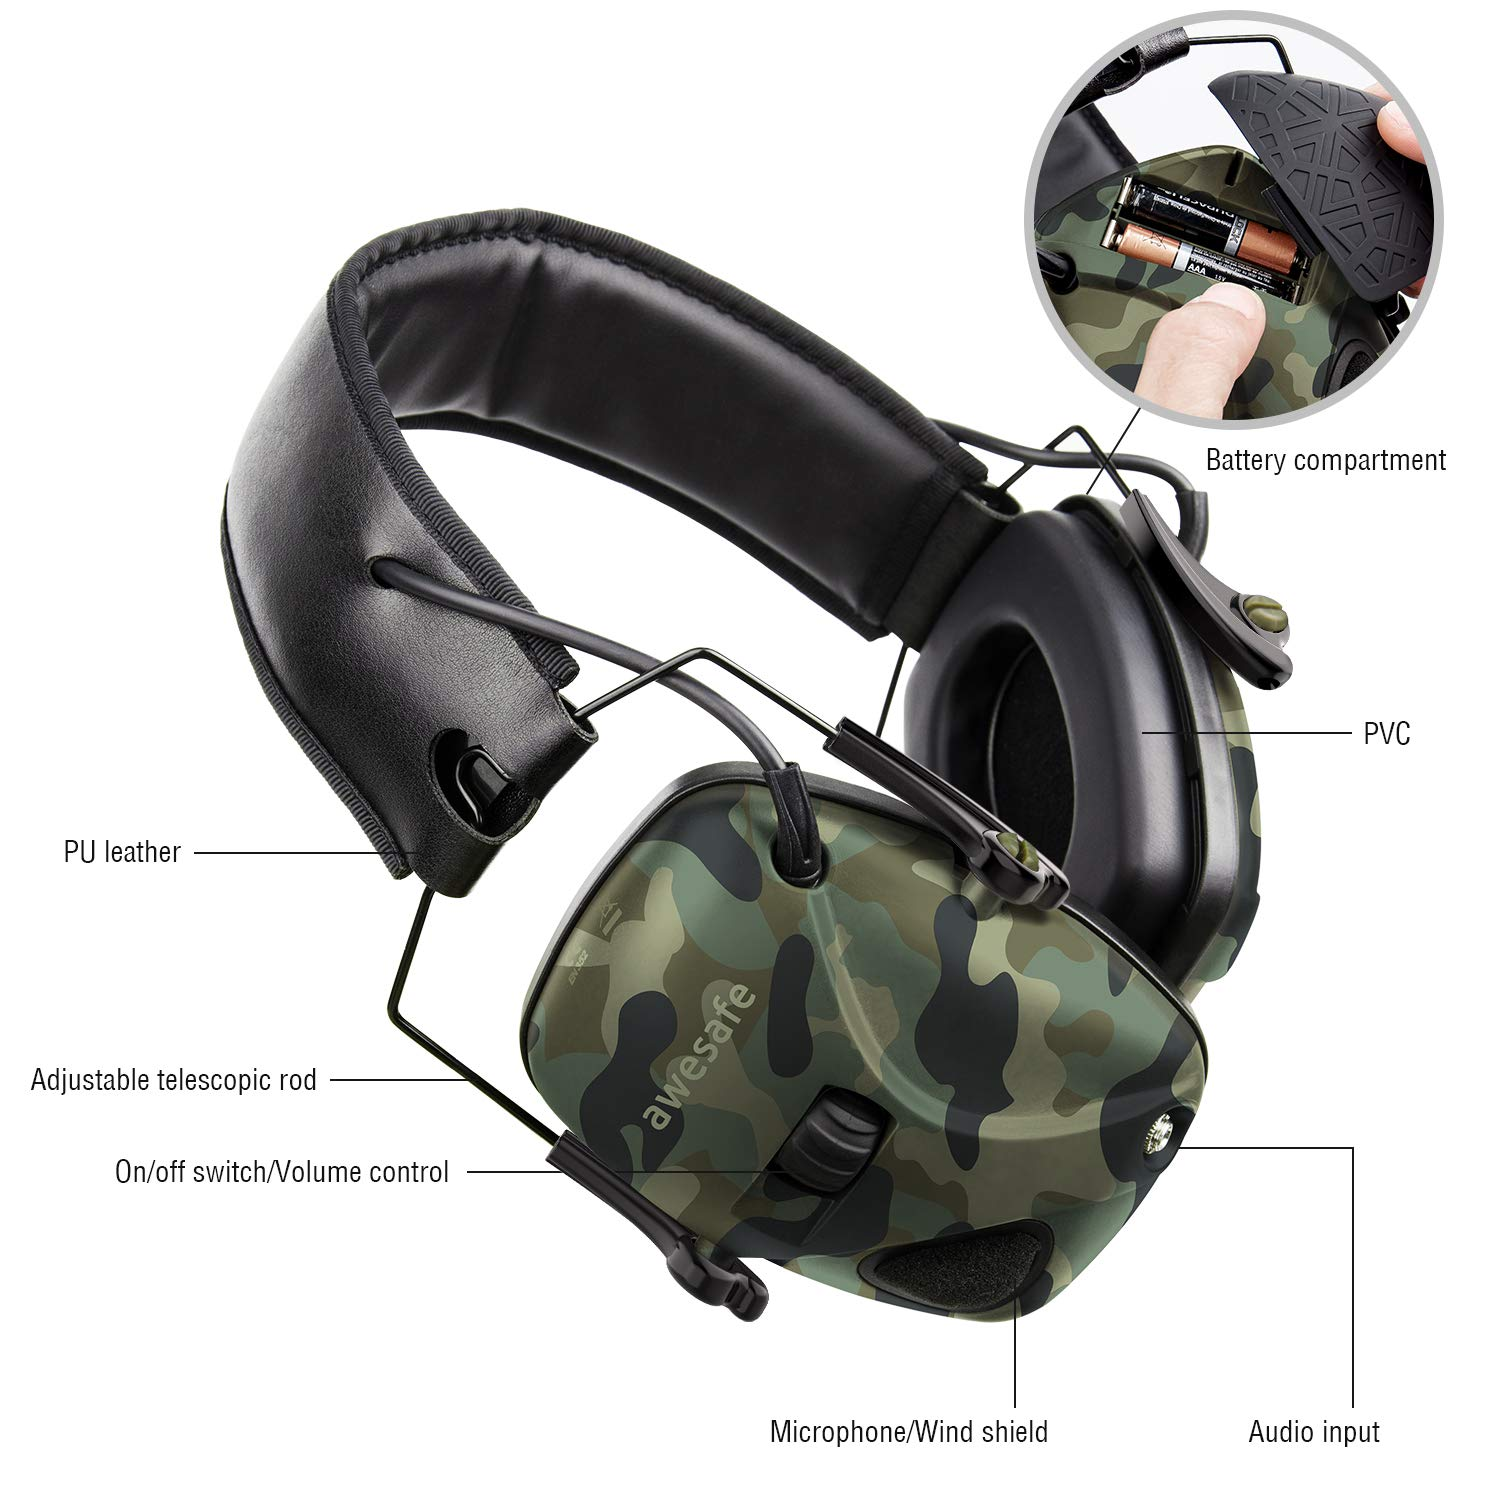 Awesafe Electronic Shooting Earmuff, Awesafe GF01 Noise Reduction Sound Amplification Electronic Safety Ear Muffs, Ear Protection, NRR 22 dB, Ideal for Shooting and Hunting … Camon by awesafe  (Image #5)